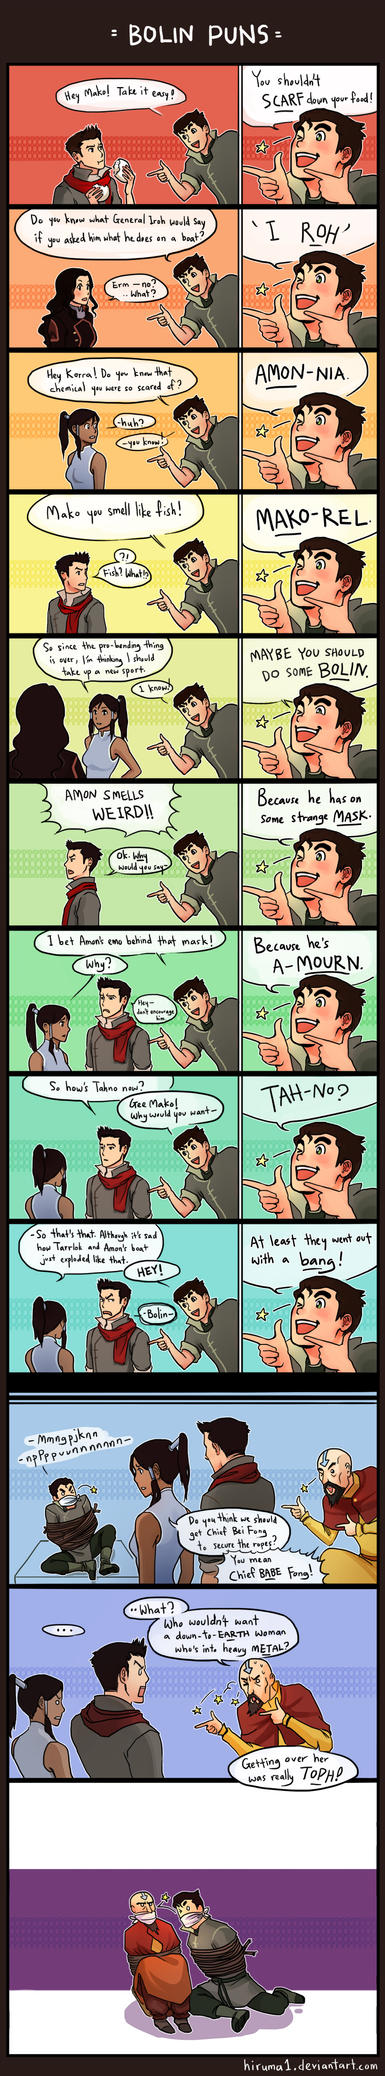 LOK- Bolin puns by lydia-the-hobo